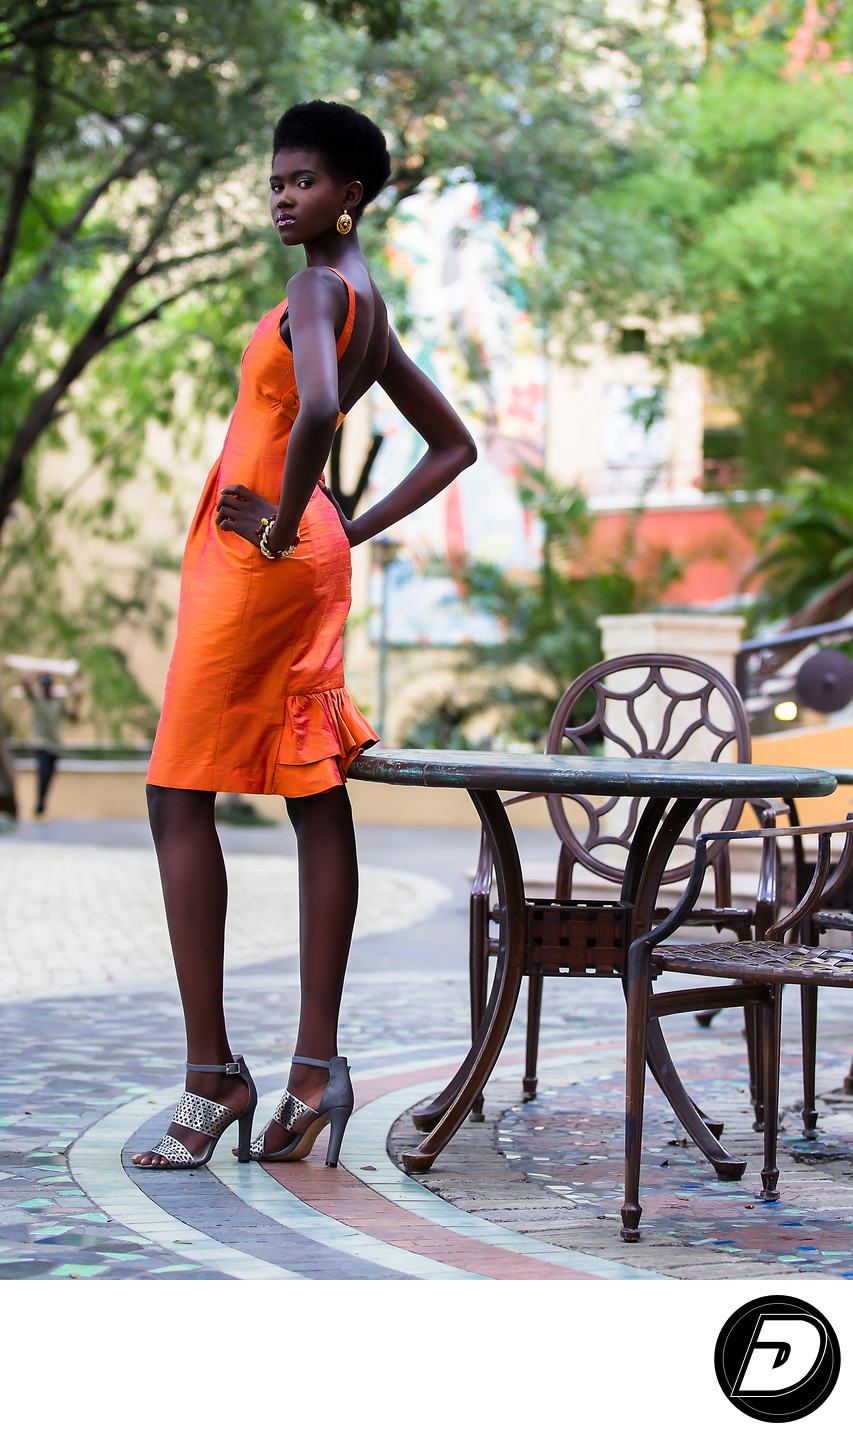 New York Fashion Photographer in Haiti